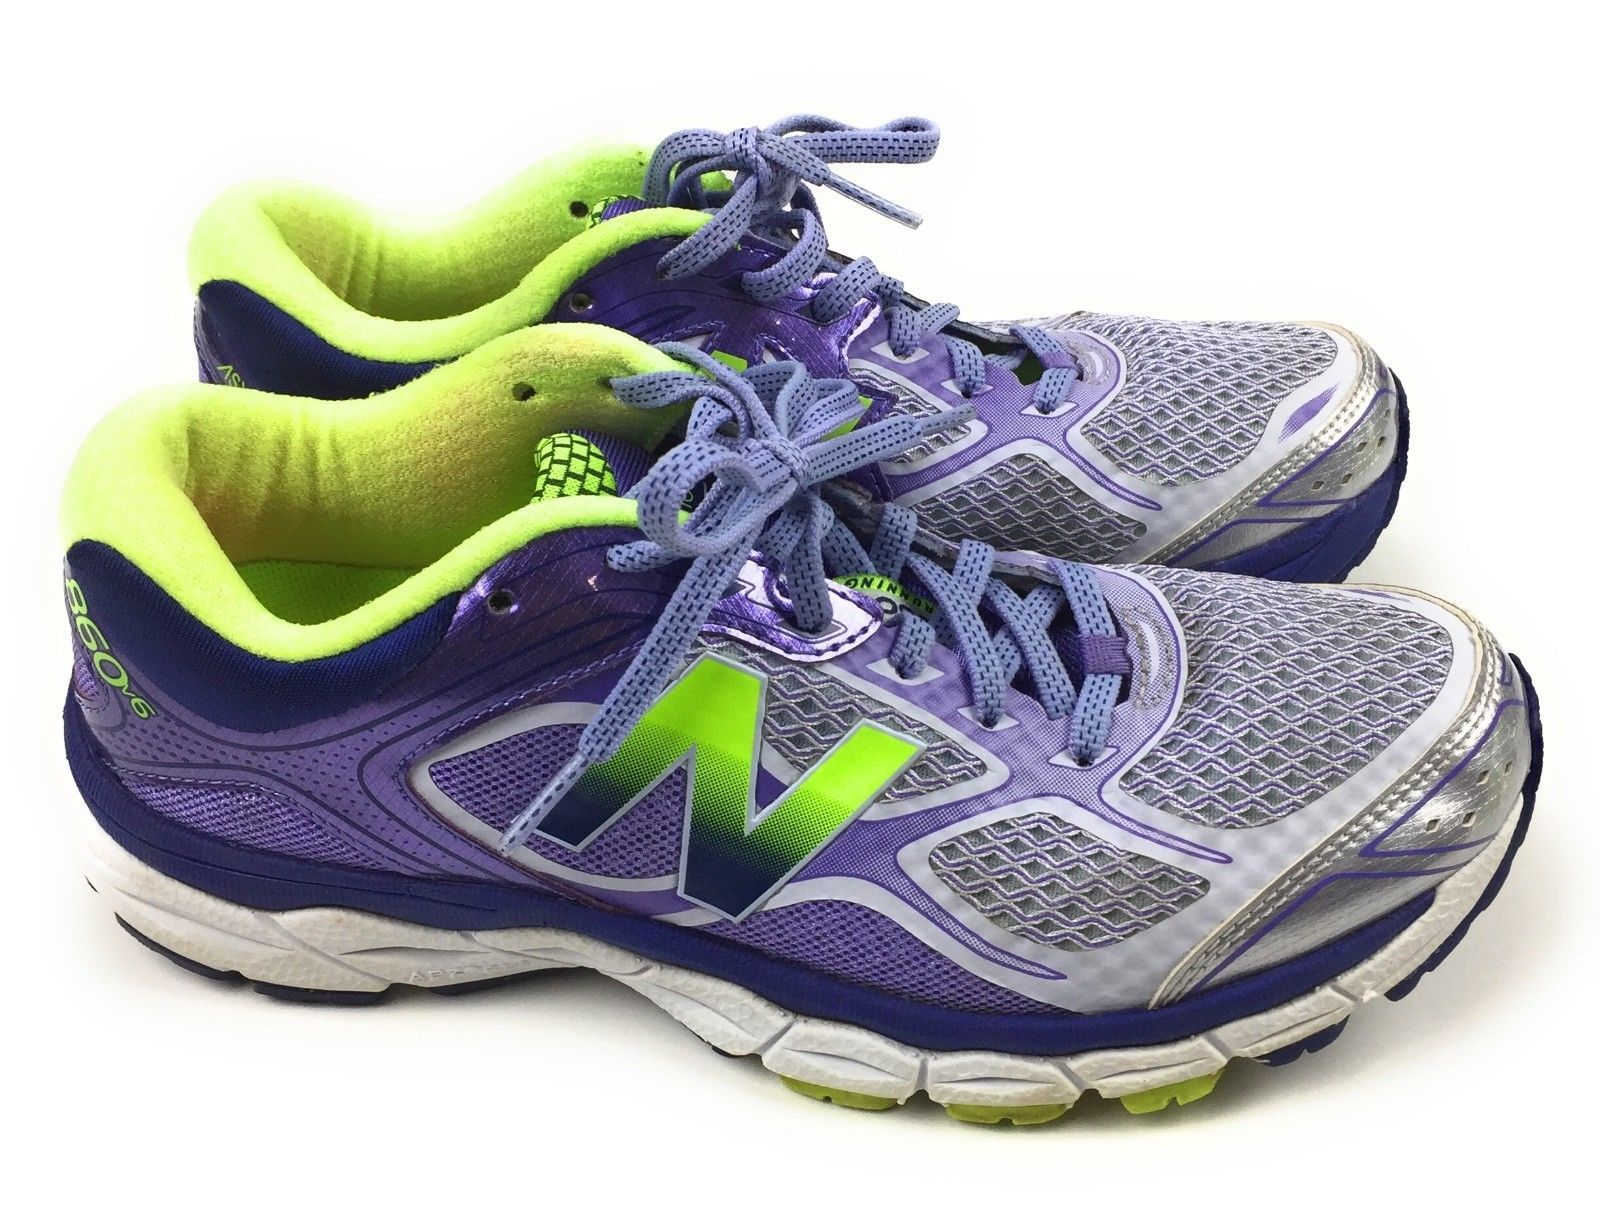 New Balance 860v6 Athletic Running Shoes W860GP8 Purple Green Women's Size 8 US image 6